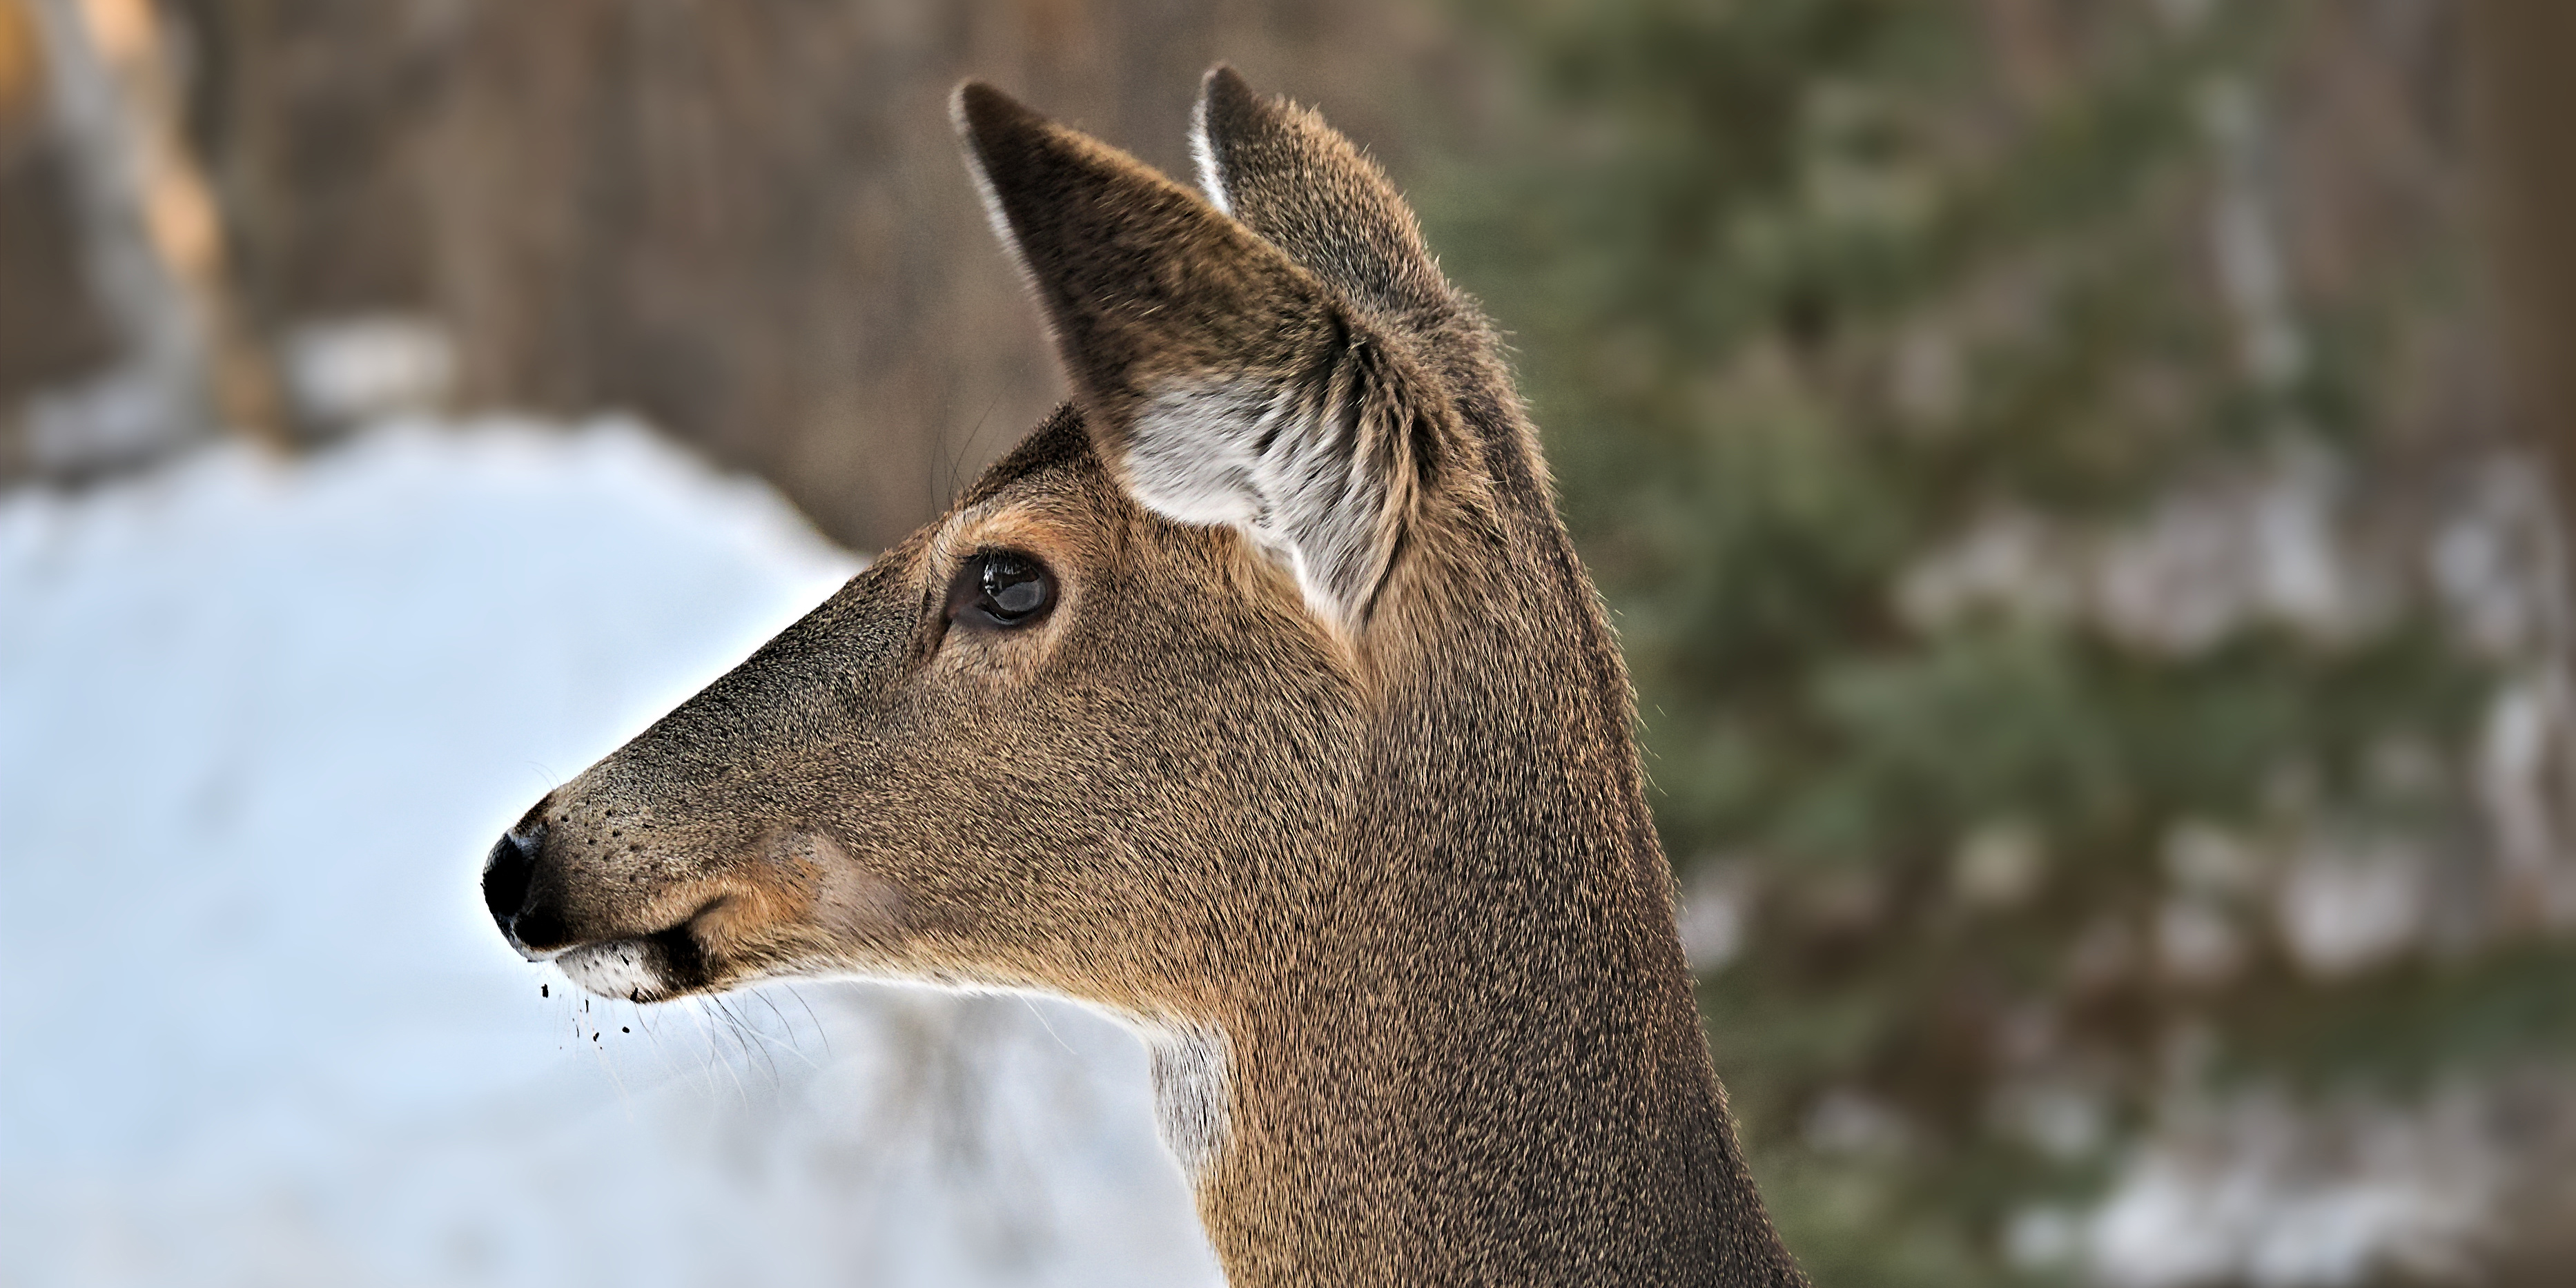 Close-up on white-tailed deer that looks out over snow.